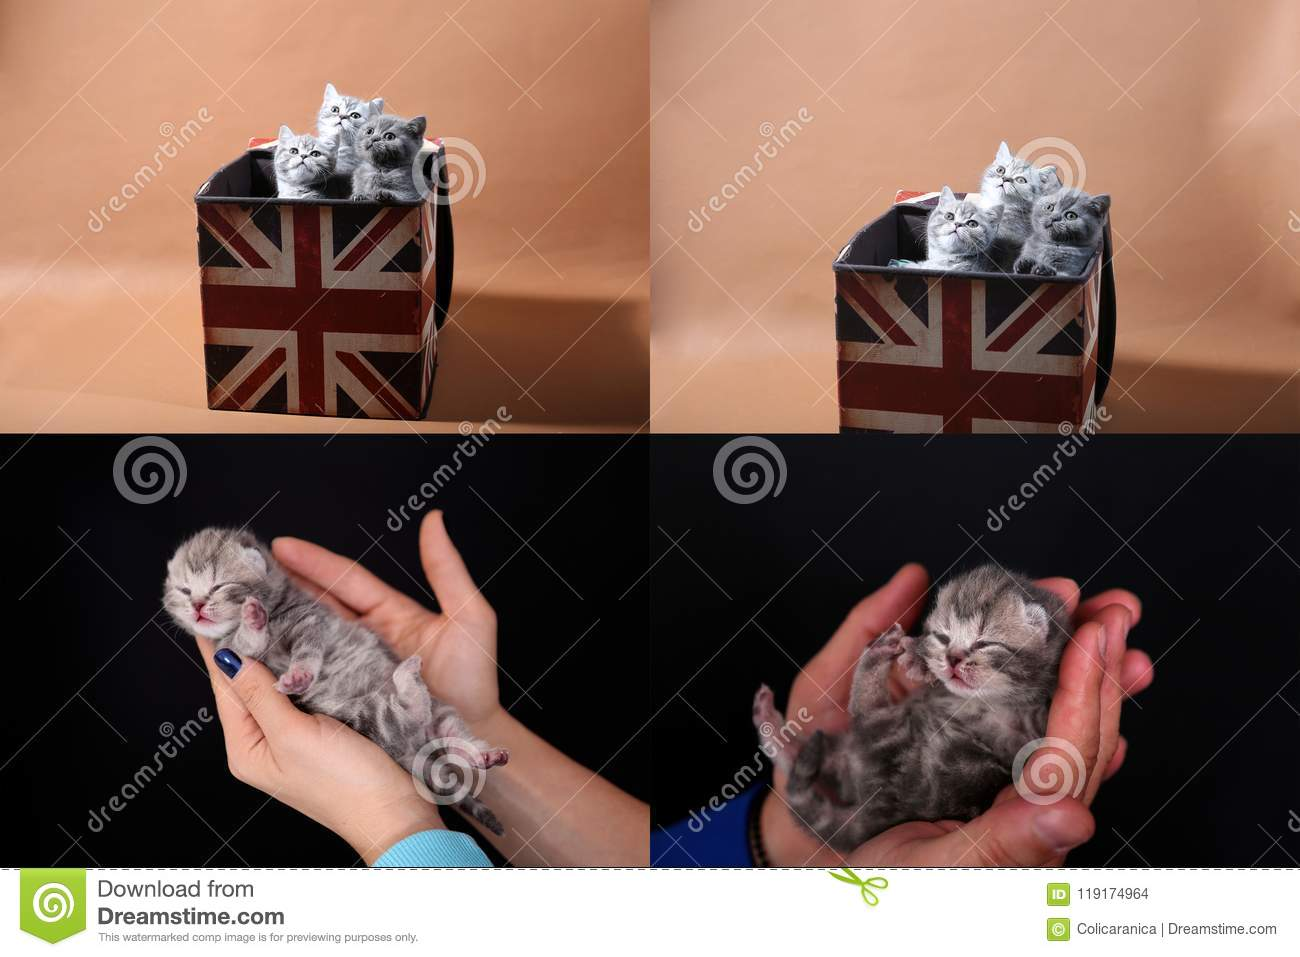 Kittens in human hand, multicam